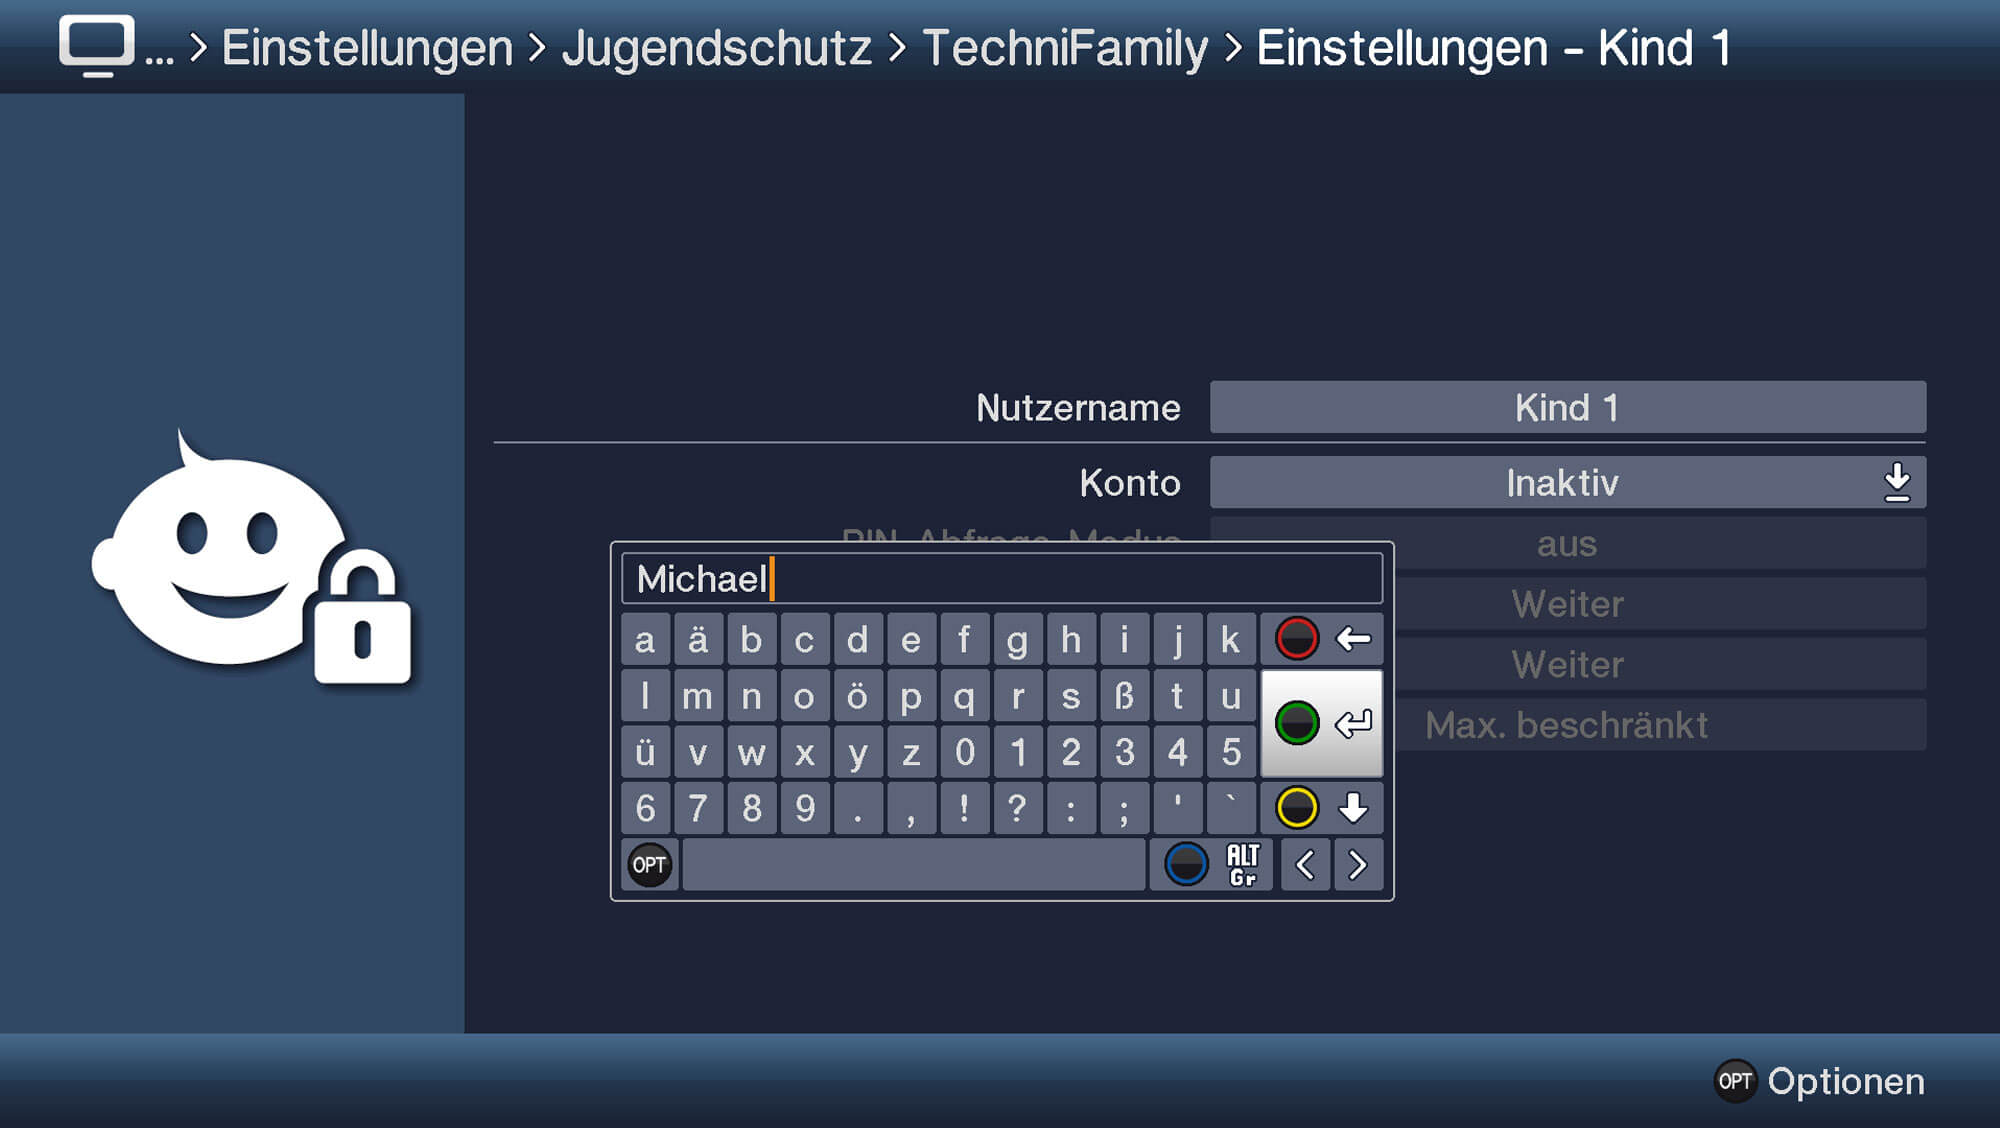 Screen: Erstellung Nutzerprofil TechniFamily